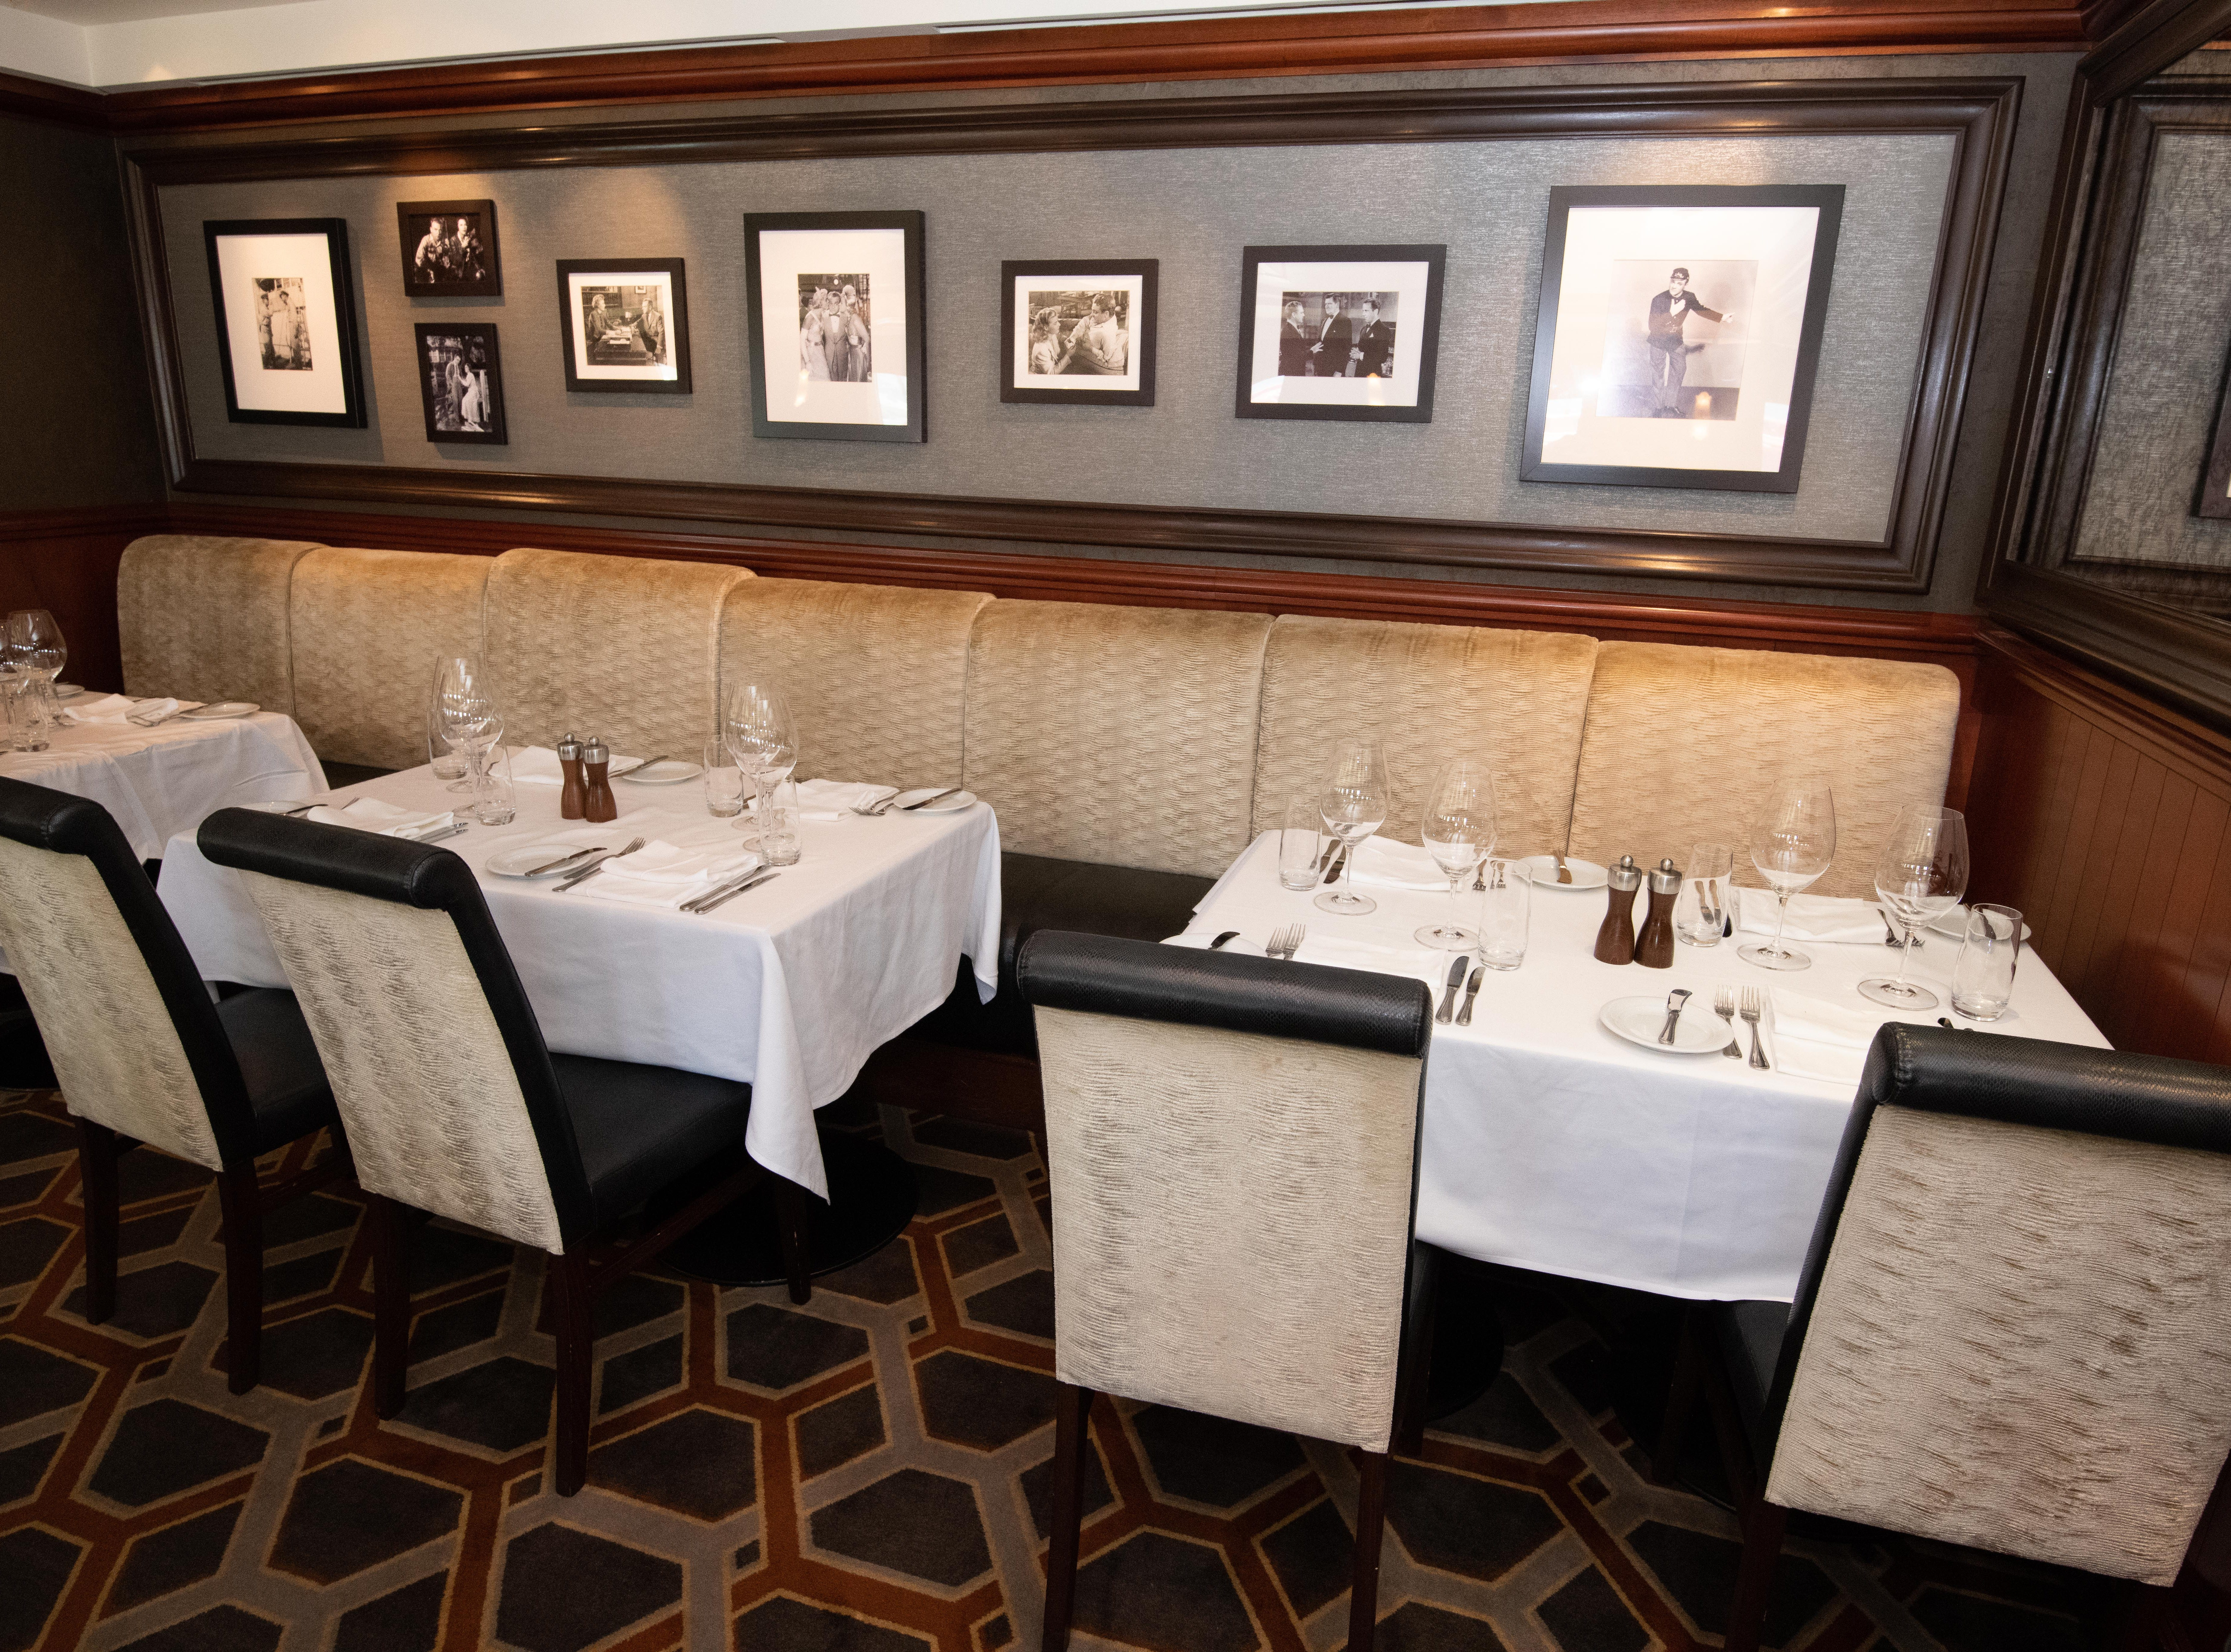 Located on Deck 6, Cagney's can seat up to 119 people and is open for dinner only. It's priced a la carte.